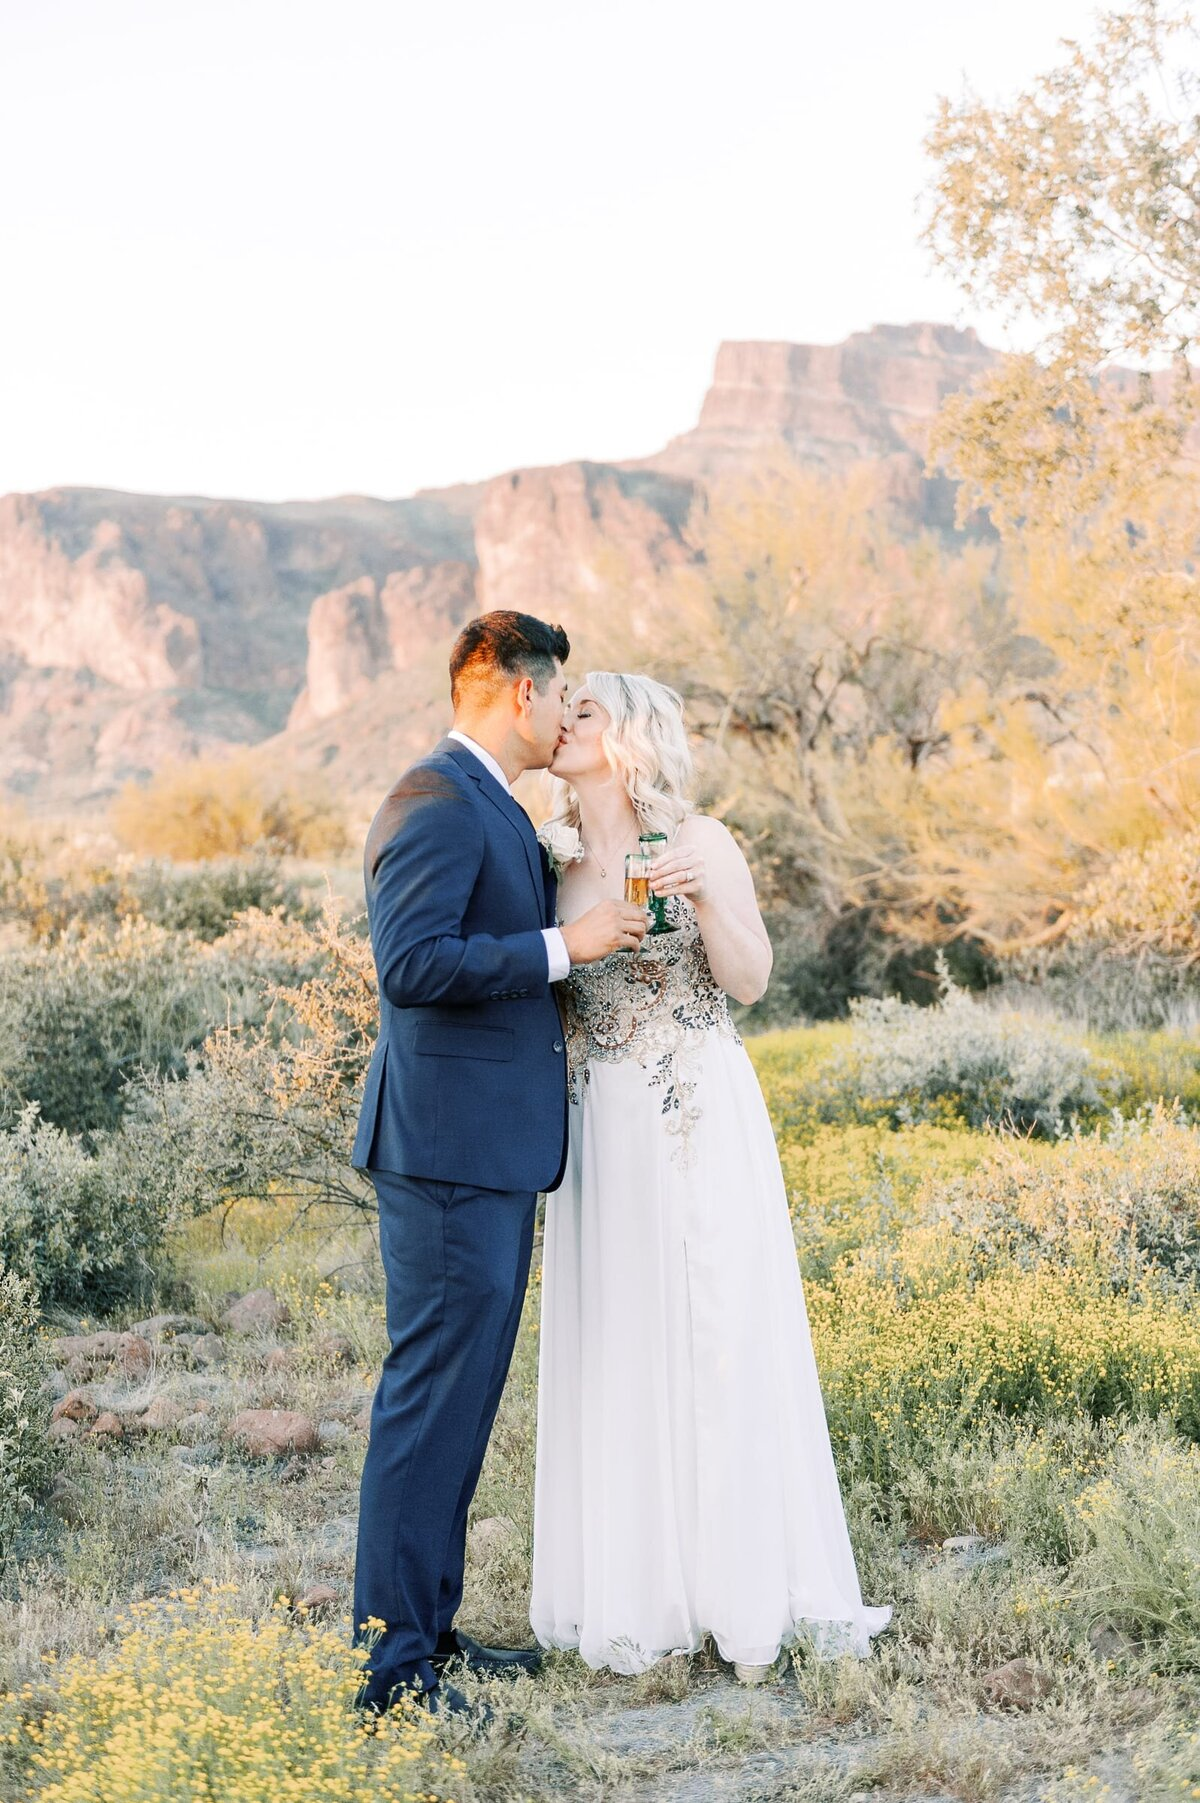 Superstition-Mountain-Elopement-Photos-Phoenix-Arizona-Elopement-Photographer-1049